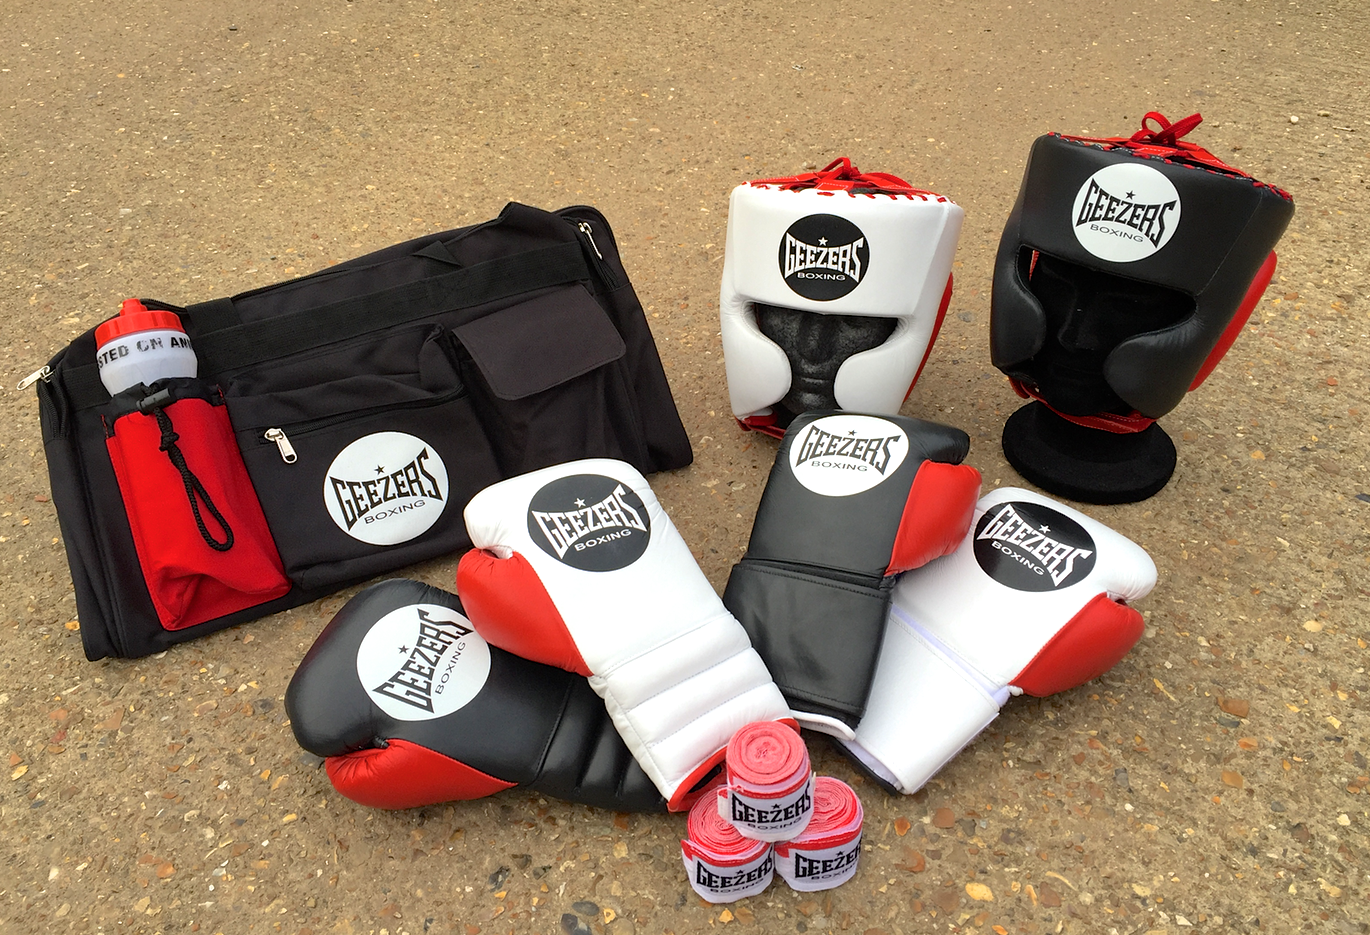 GEEZERS ELITE PRO'S! Check out the full Elite Pro range in the link below!!  http://www.geezersboxing.co.uk/geezers-2016-range/elite-pro-range  #Geezers #GeezersBoxing #Boxing #Sparring #Fight #Gloves #kitbag #Headguard #ElitePro #ProBoxing #Pro